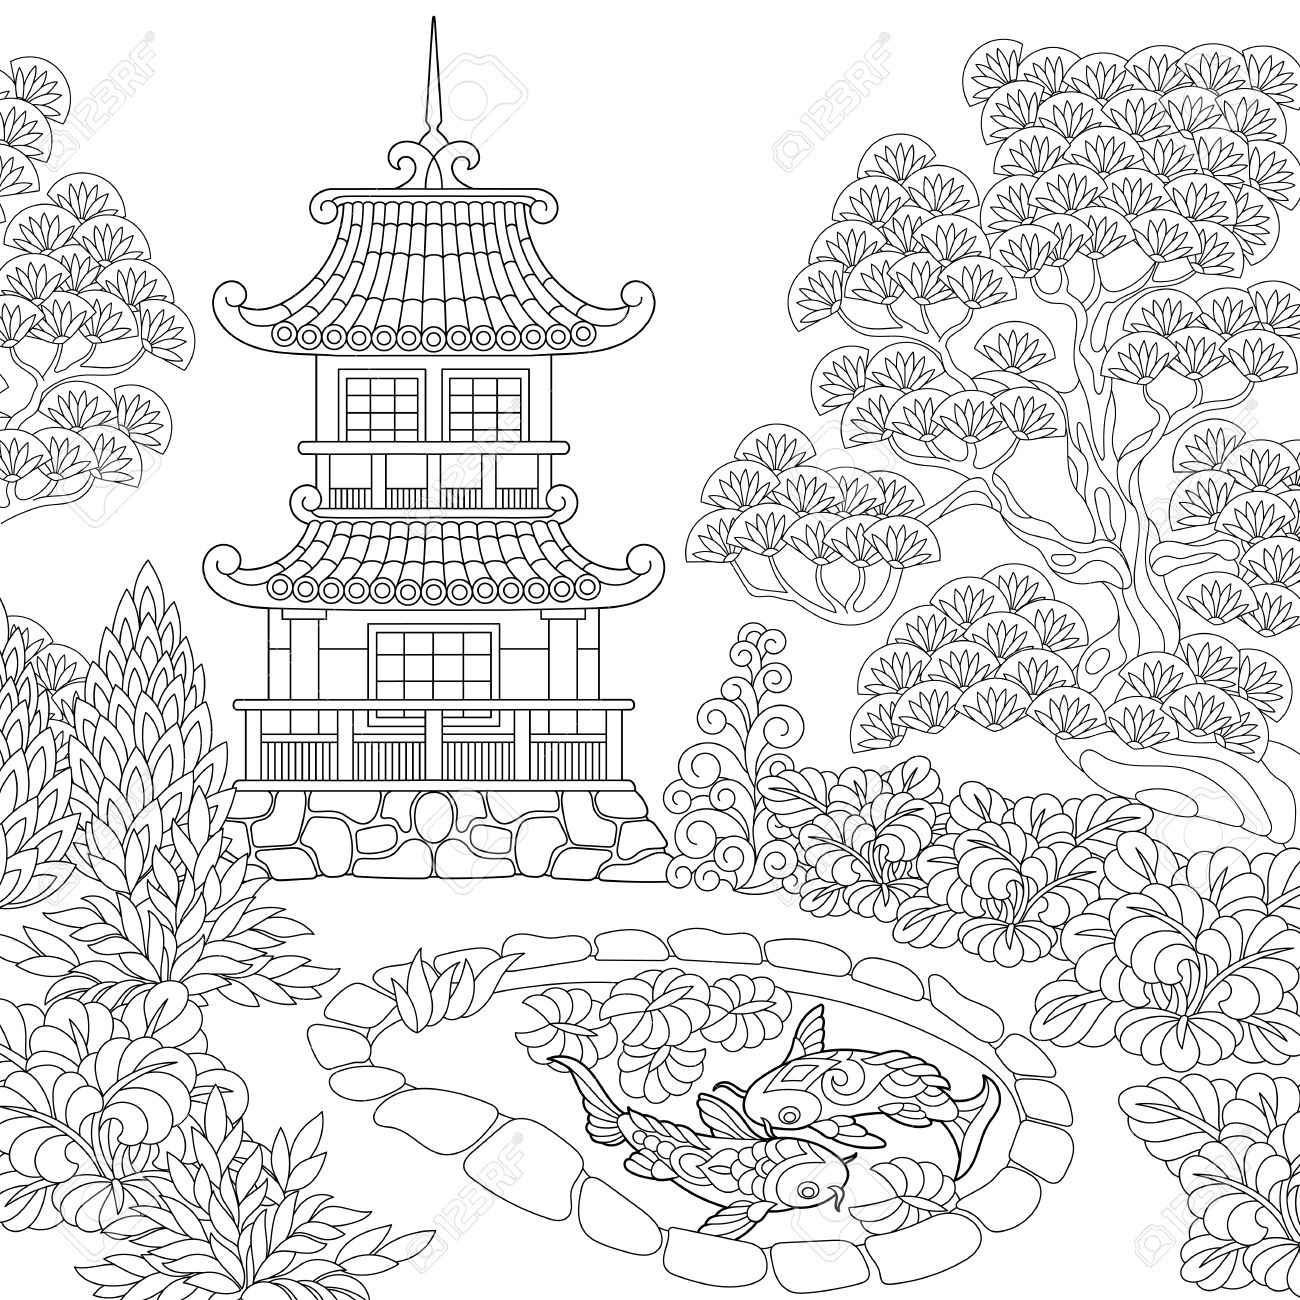 Antistress Coloring Book Page Of Oriental Temple Japanese Or Chinese Pagoda Tower Freehand Sketch Drawing For